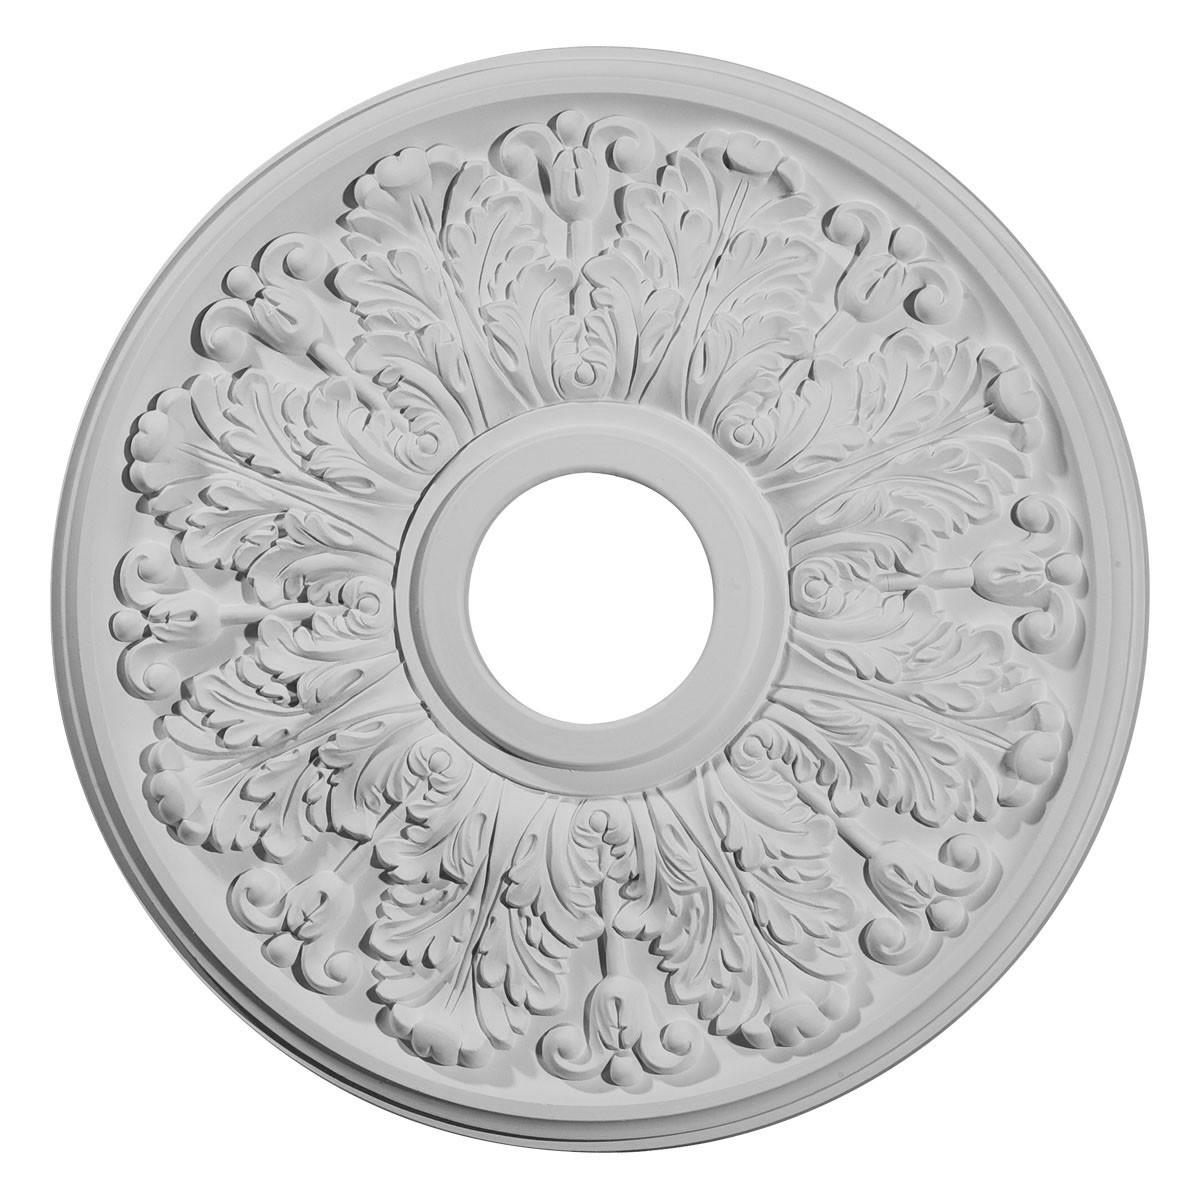 """EM-CM16AP - 16 1/2""""OD x 3 5/8""""ID x 1 1/8""""P Apollo Ceiling Medallion (Fits Canopies up to 5 5/8"""")"""